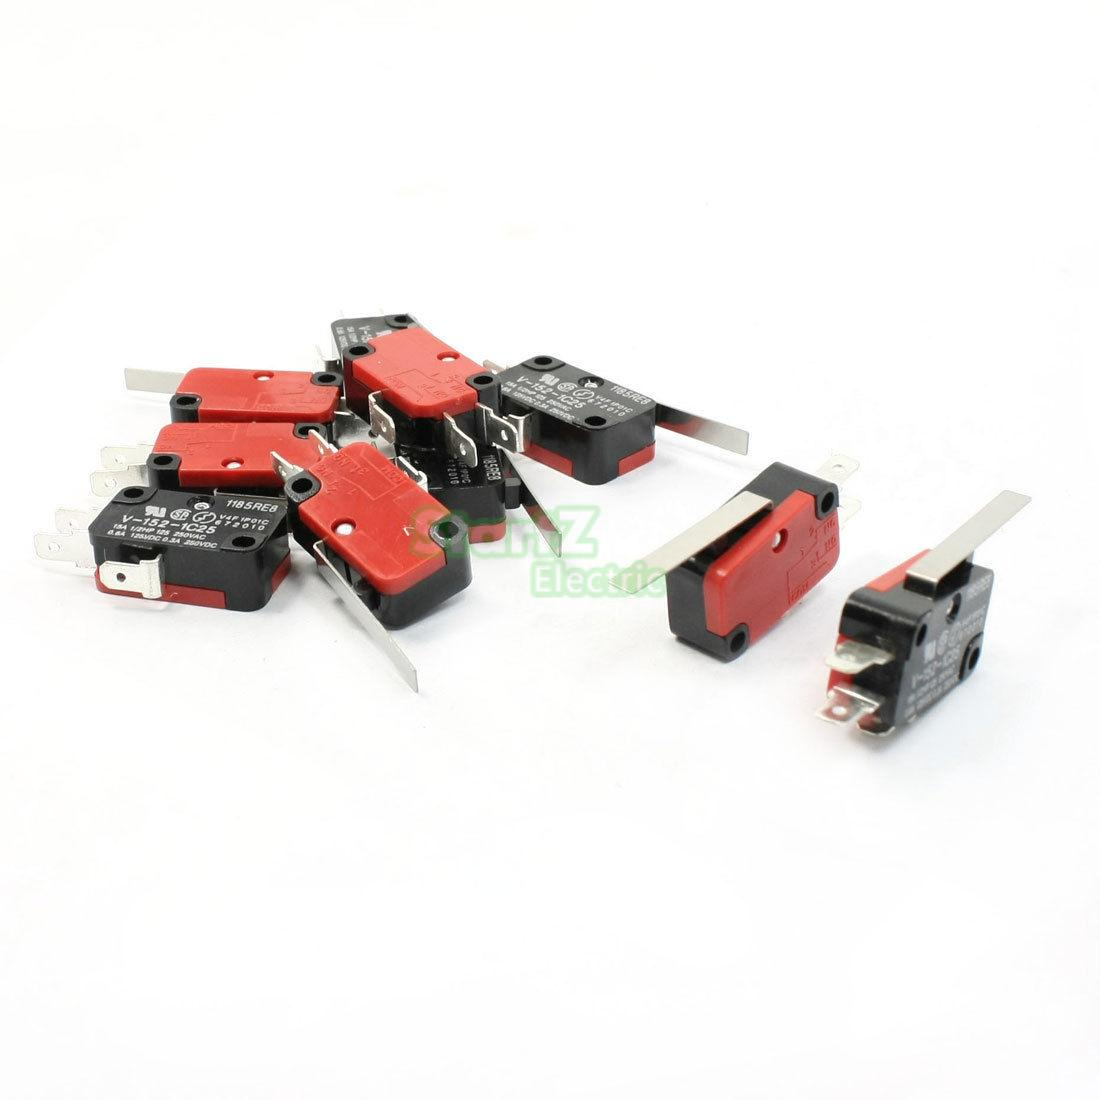 V-152-1C25 SPDT 1NO 1NC 3Pin Short Straight Hinge Lever Limit Micro Switch 10Pcs 10pcs v 155 1c25 momentary limit micro switch spdt snap action switch